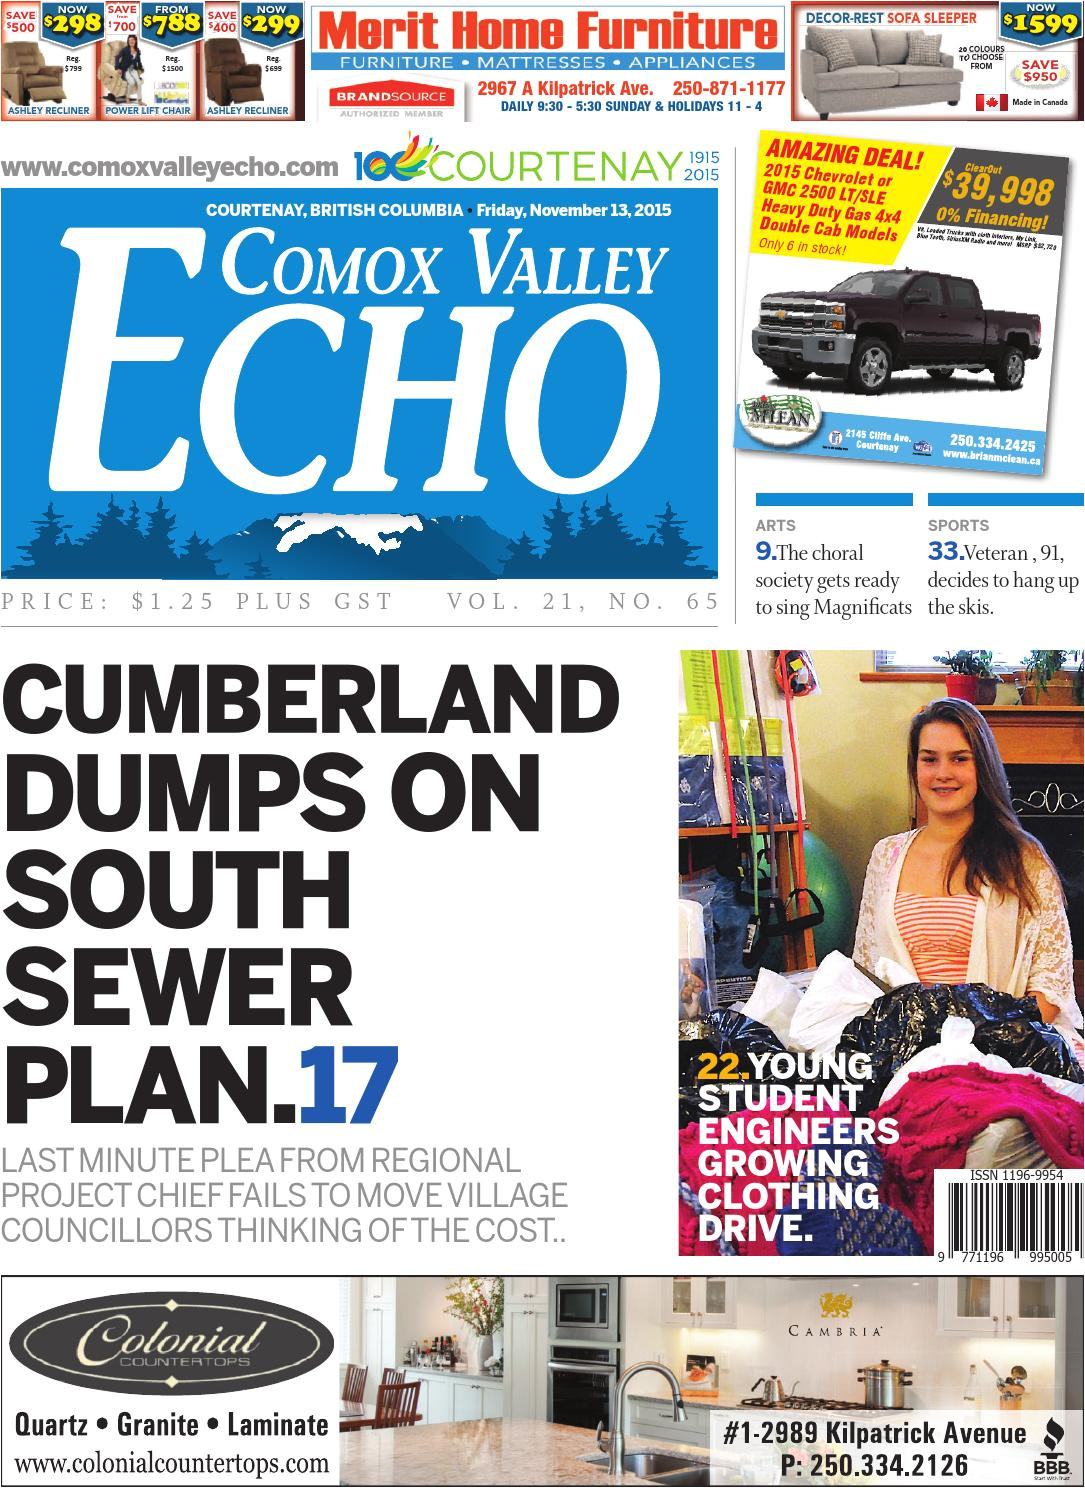 Superstore Click and Collect Courtenay Comox Valley Echo November 13 2015 by Black Press issuu